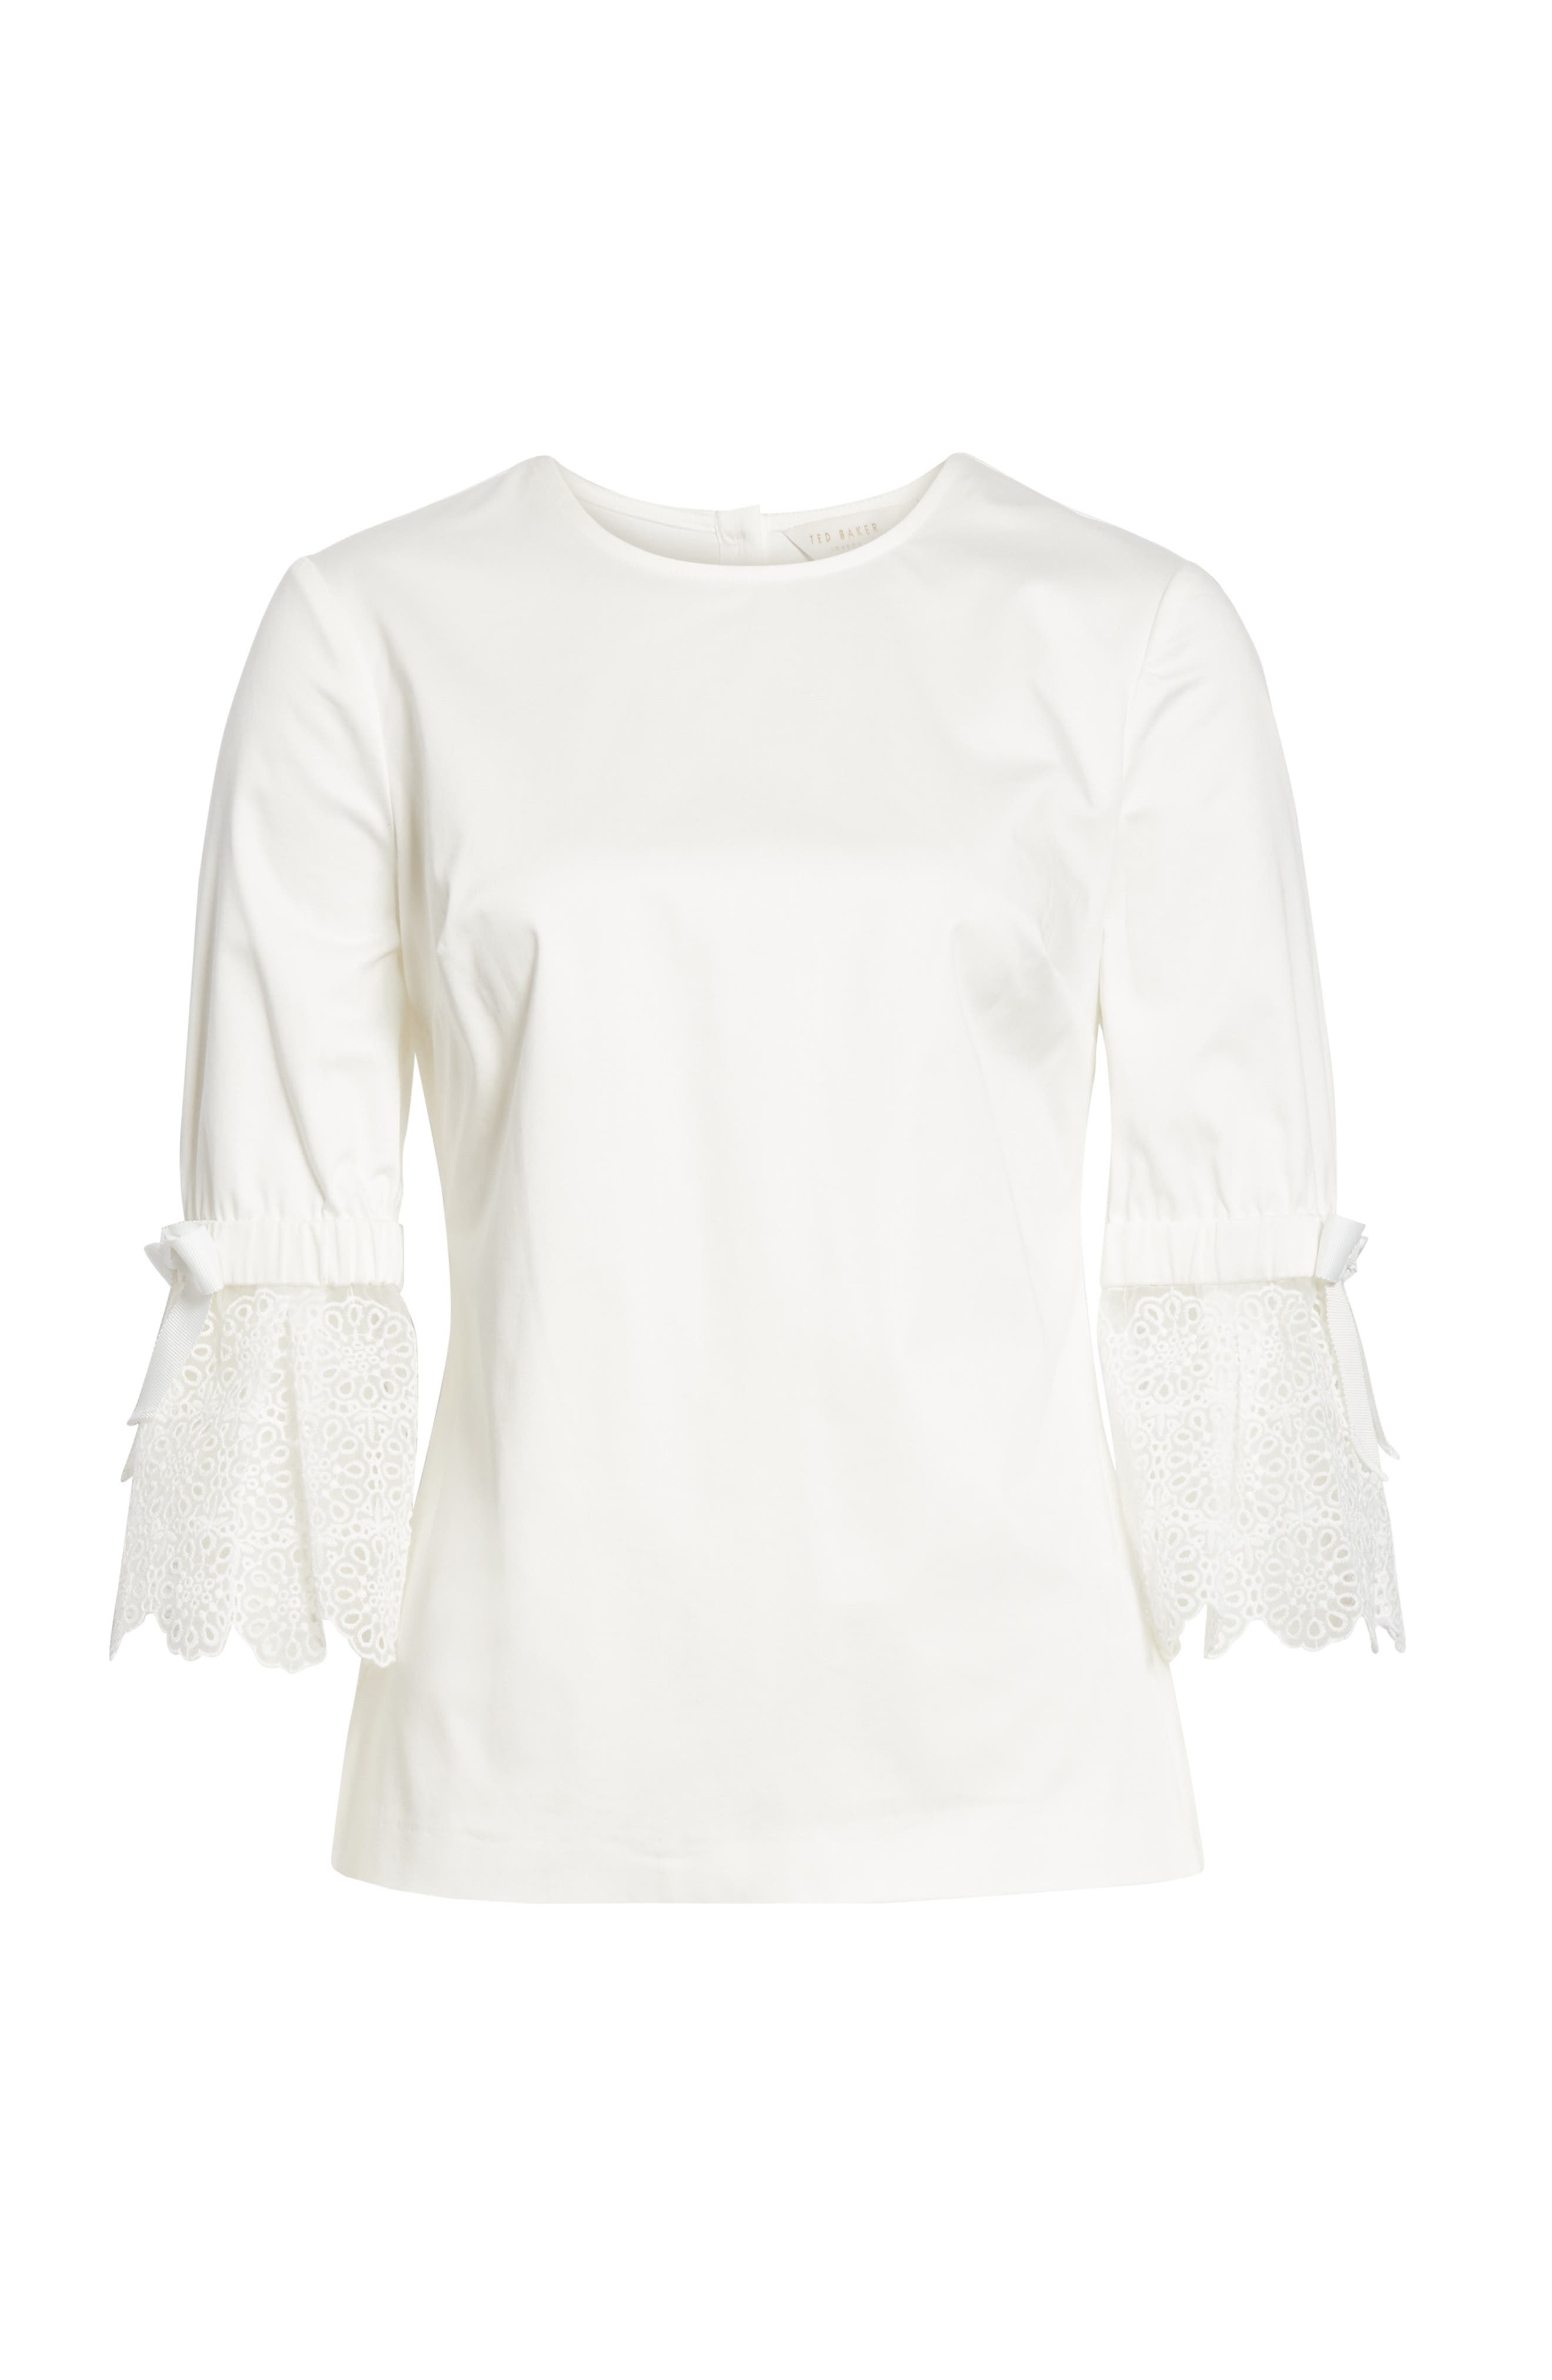 Broderie Lace Bow Sleeve Top,                             Alternate thumbnail 6, color,                             110